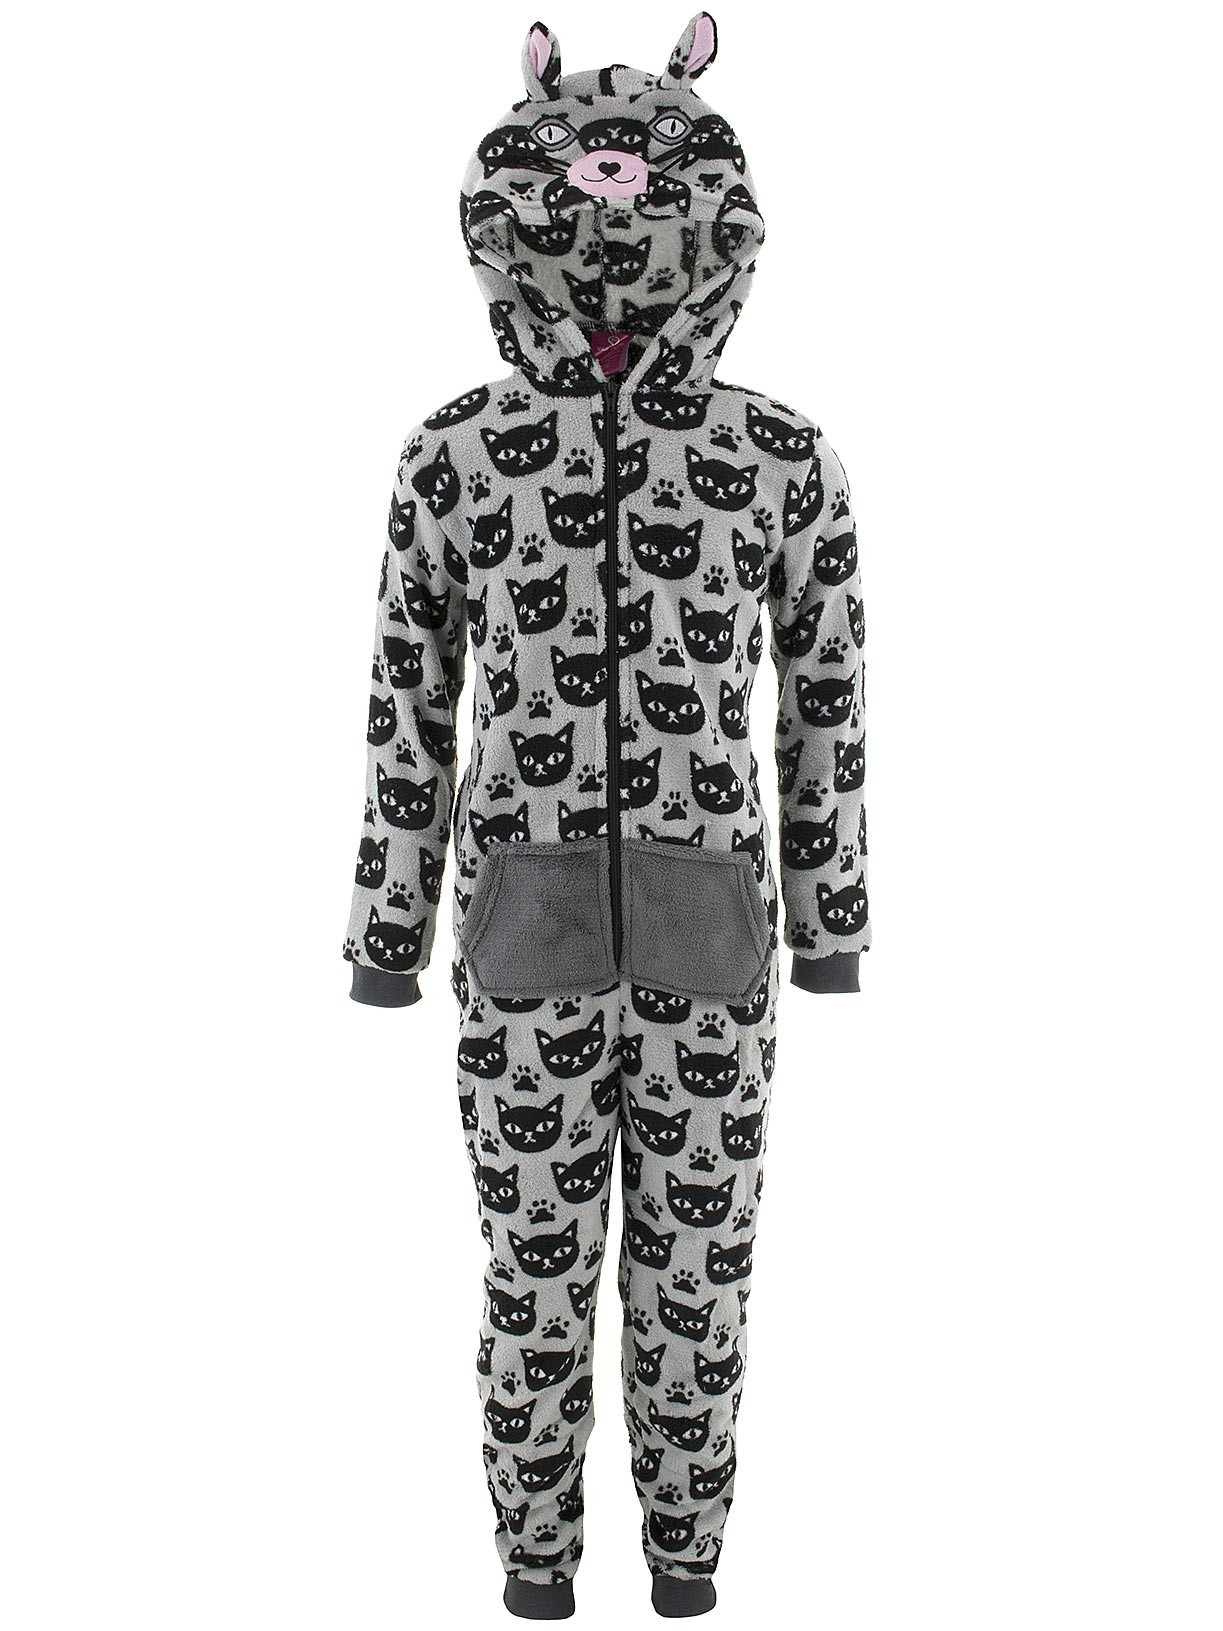 Chili Peppers Girls Cat Print Hooded Critter One-Piee Pajamas (Little Girls & Big Girls)